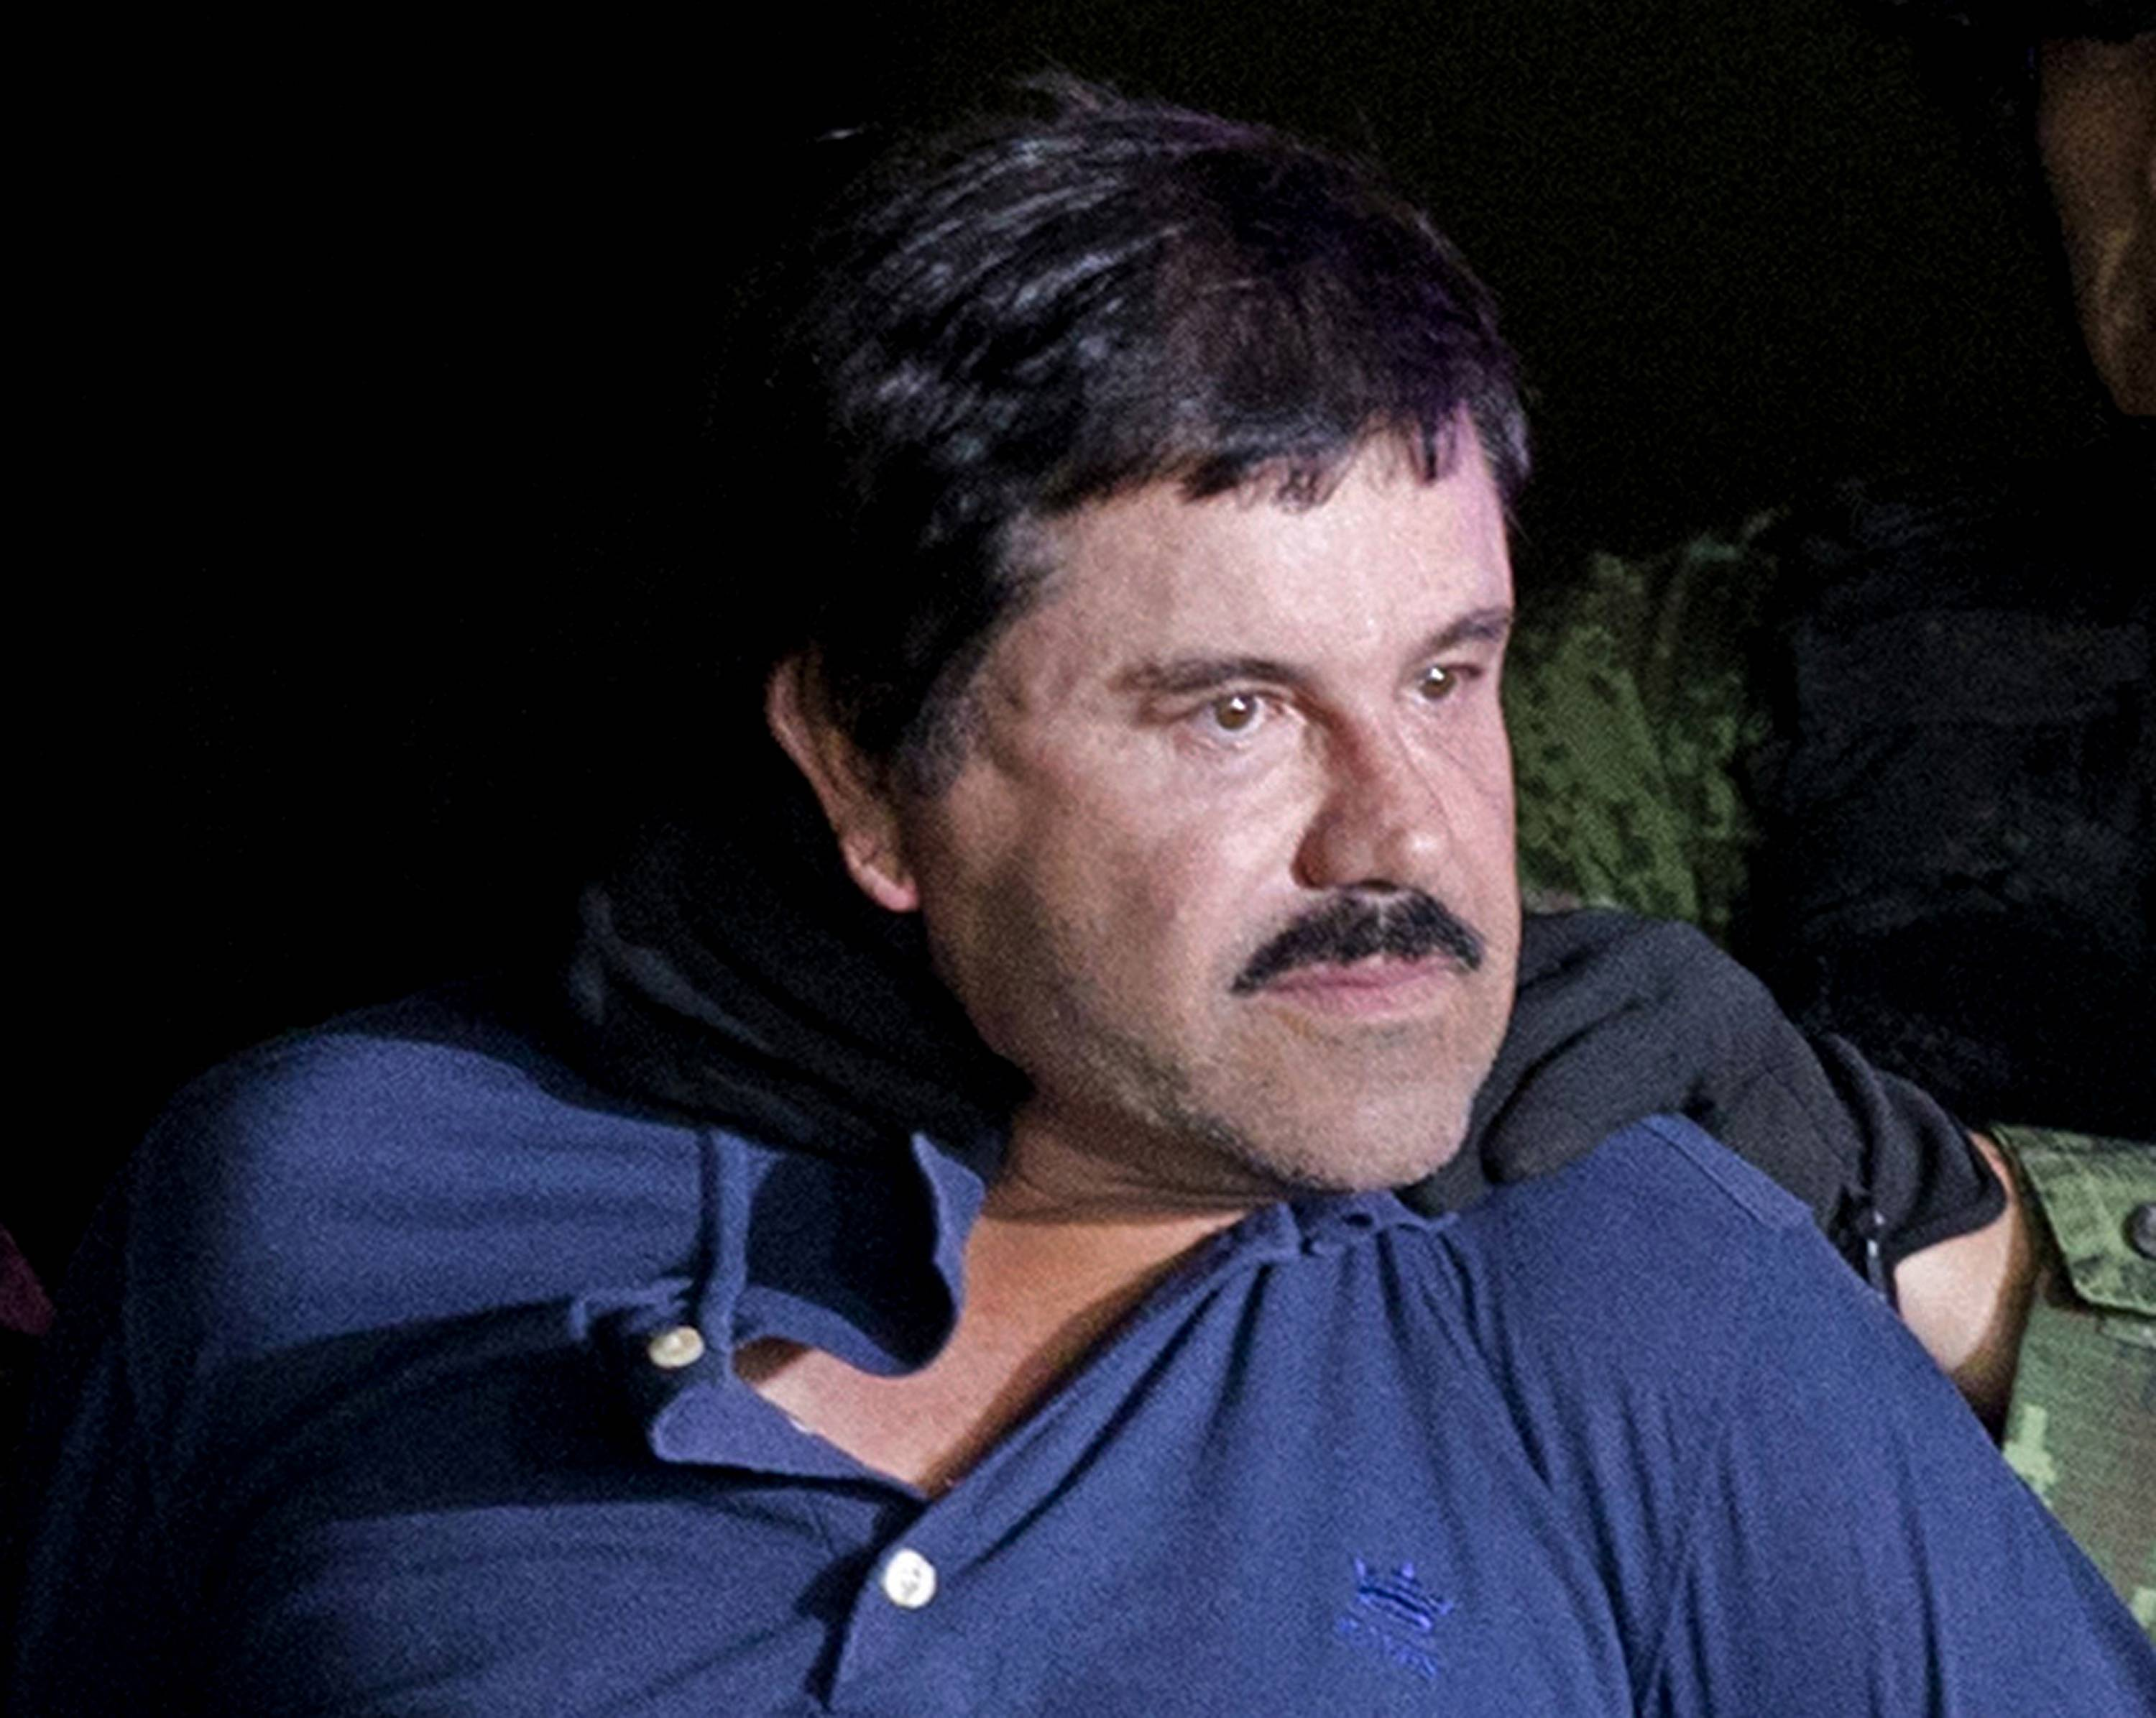 Facts Matter: El Chapo didn't testify at trial that he funded Democrats